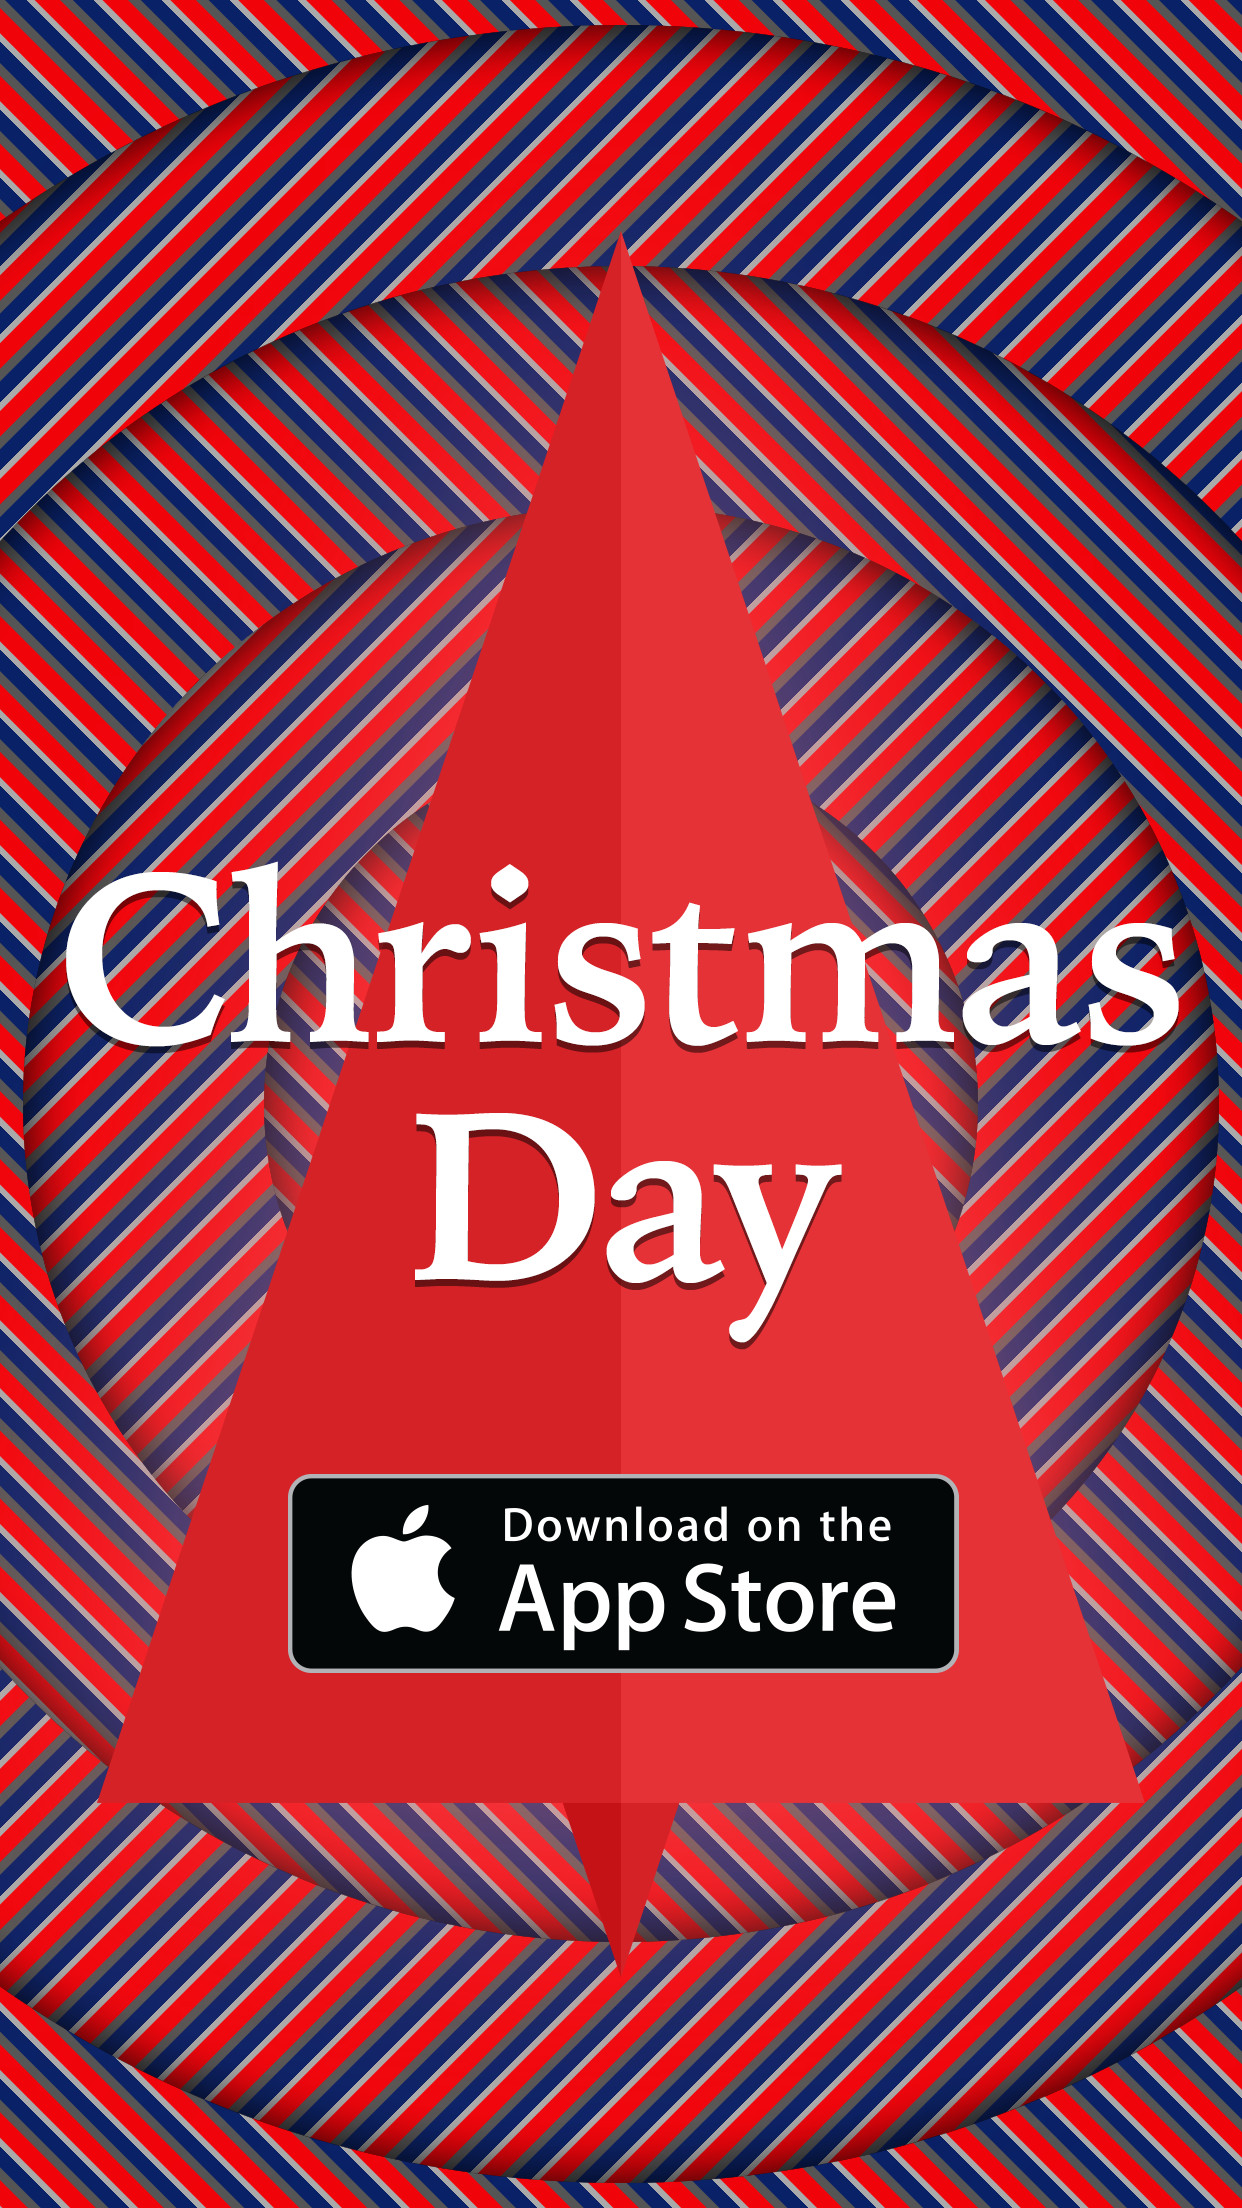 Christmas Day deluxe